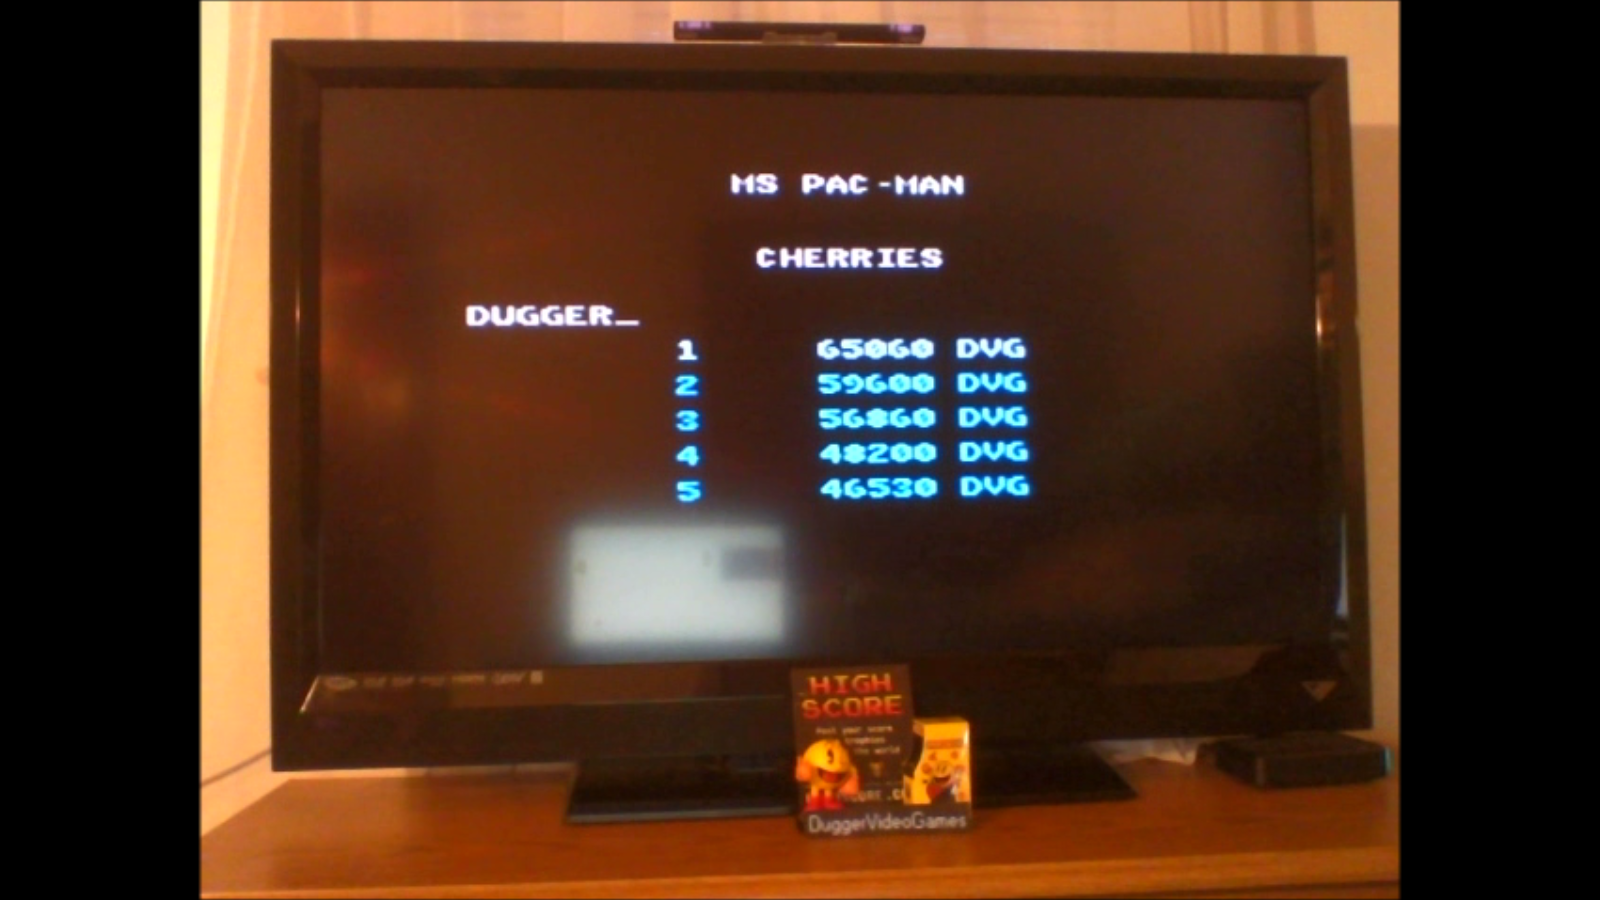 DuggerVideoGames: Ms. Pac-Man: Cherries Start (Atari 7800 Emulated) 65,060 points on 2016-12-21 15:59:34